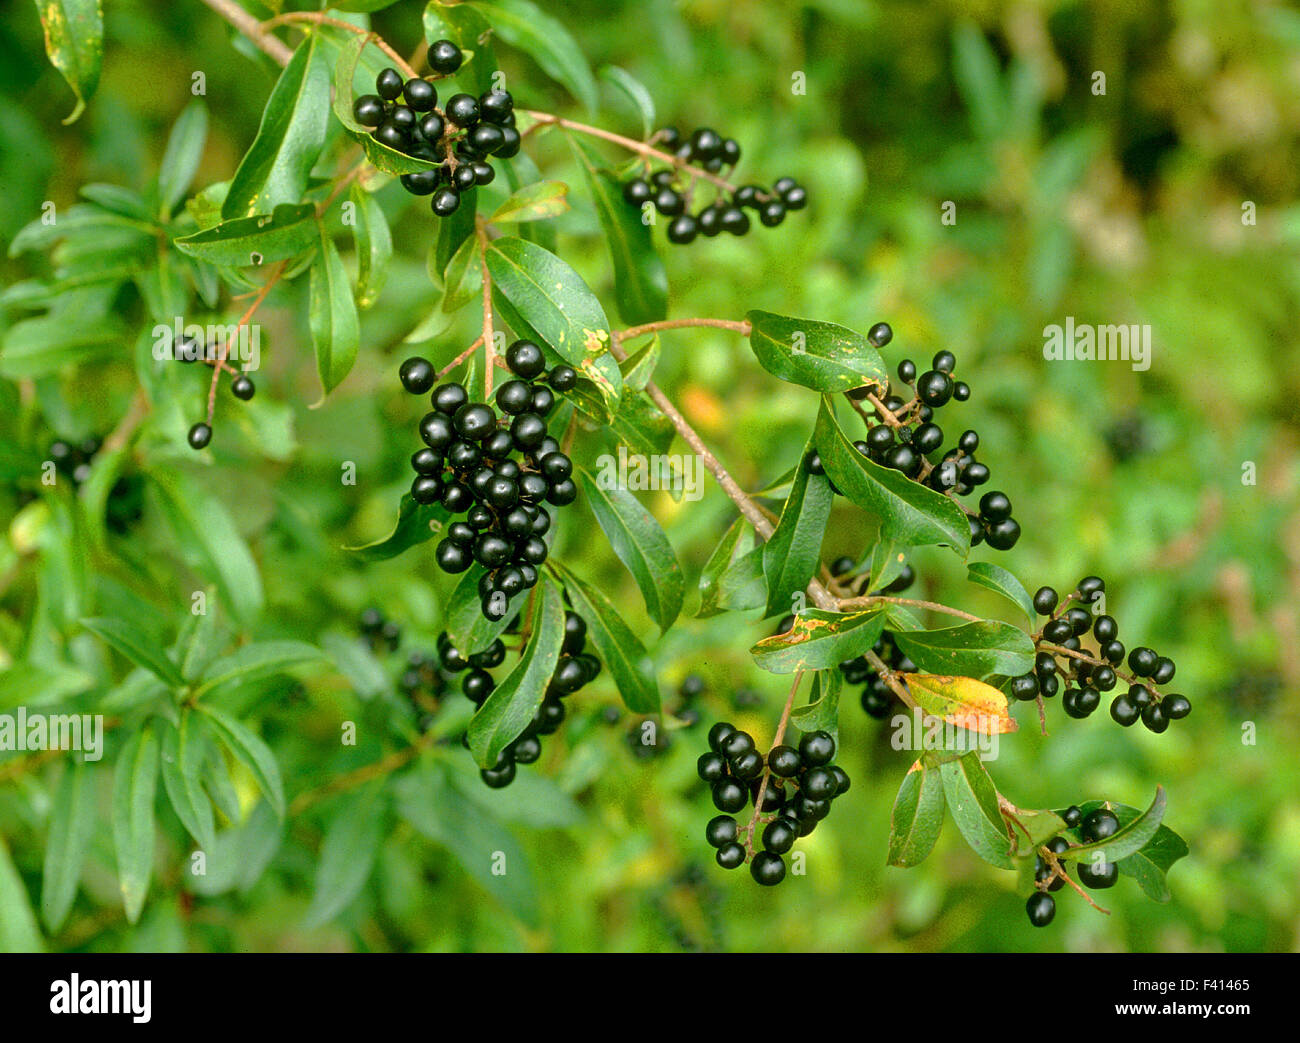 Liguster Pflanze Rätsel Berry; Shrub; Liguster Stock Photo, Royalty Free Image